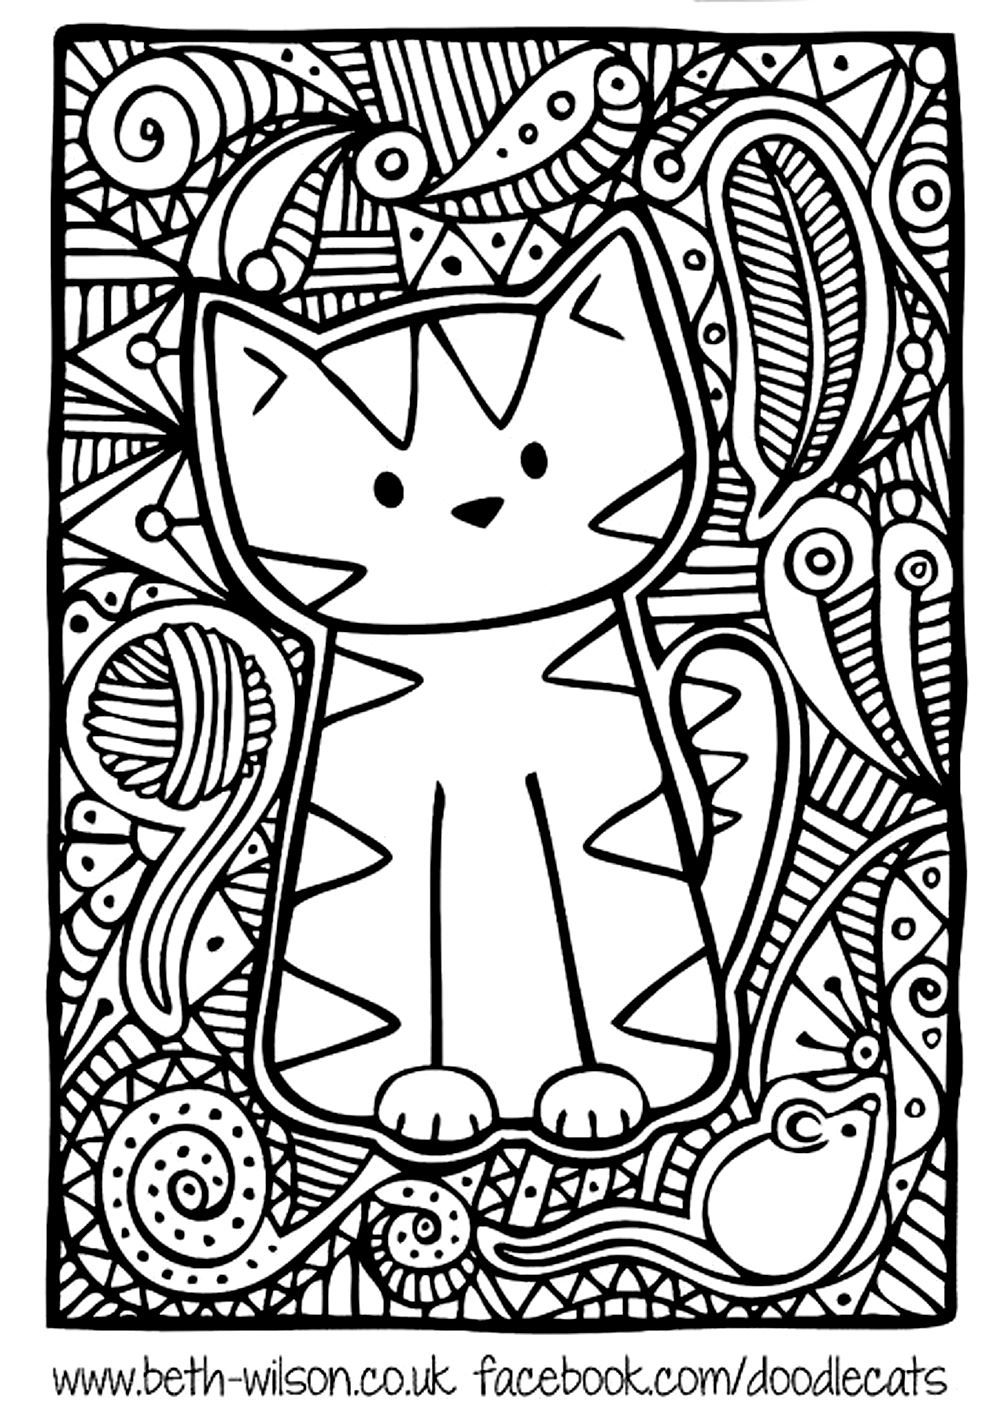 Insects Animals Coloring Pages For Adults Coloriage Coloriage Chat Coloriage Insectes